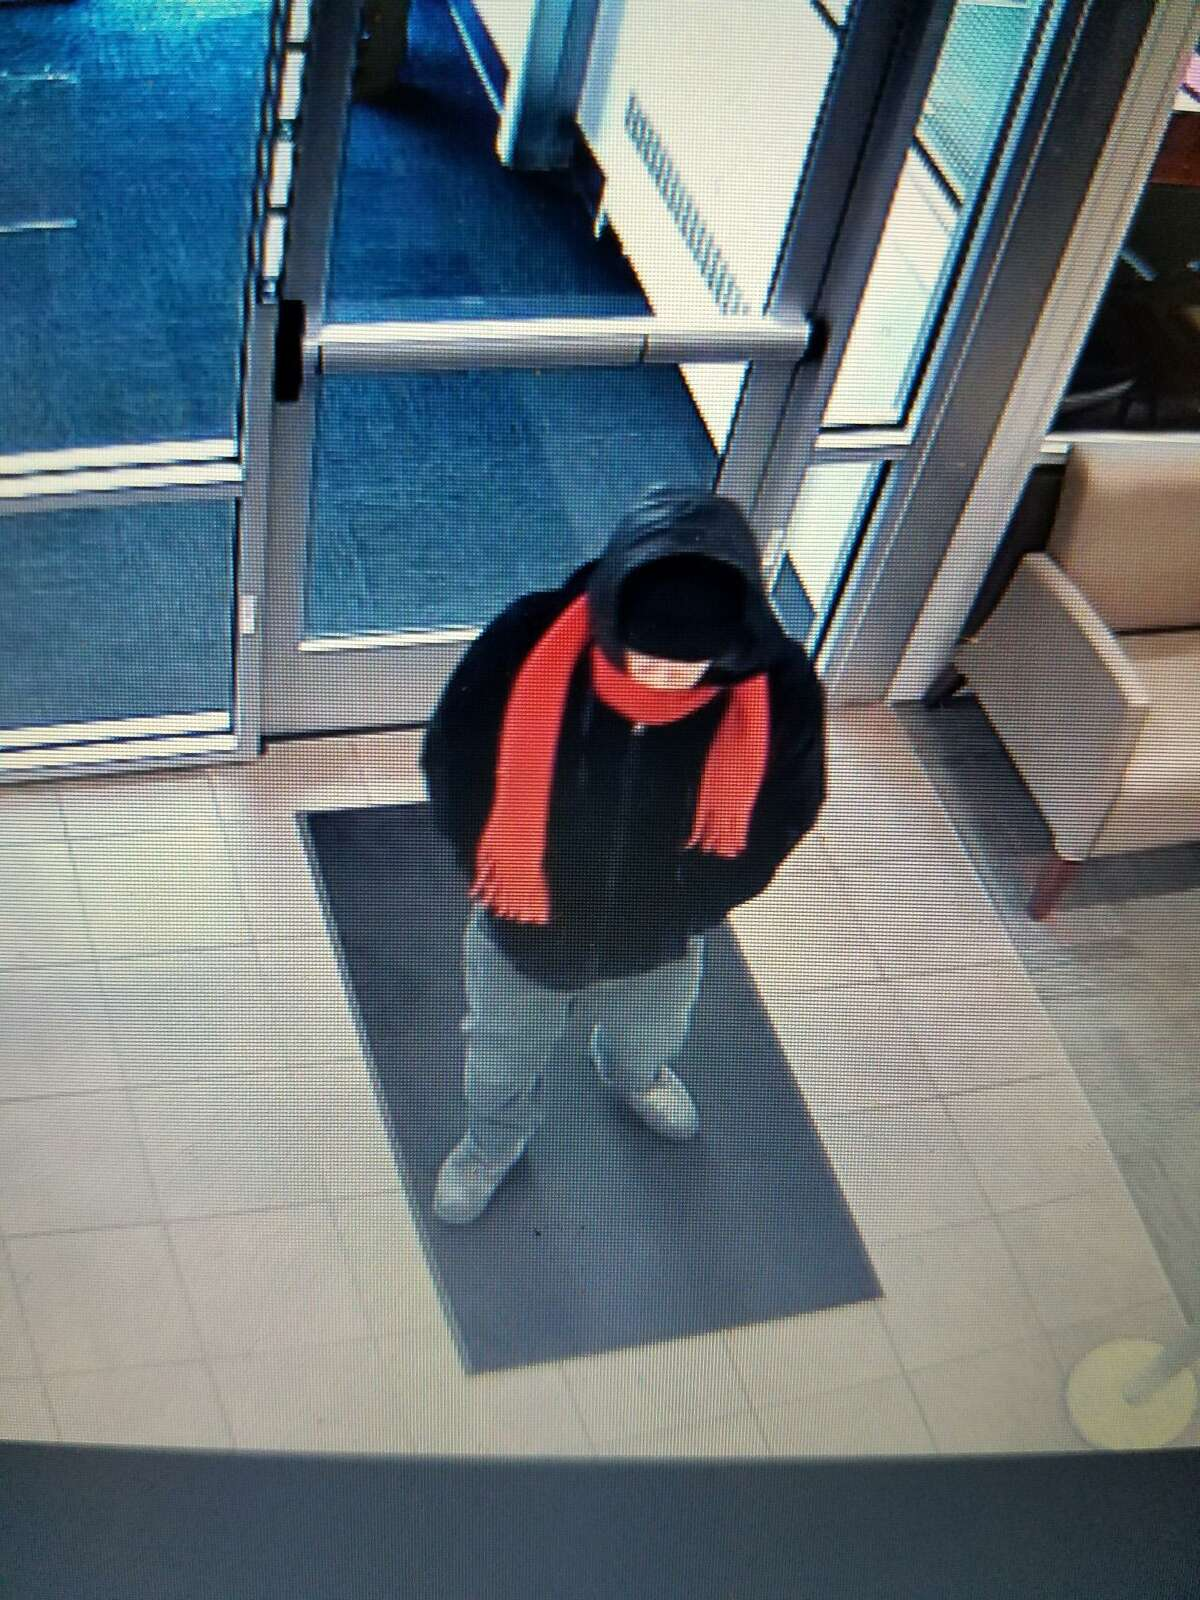 West Haven police are looking for the public's help to identify this suspect.